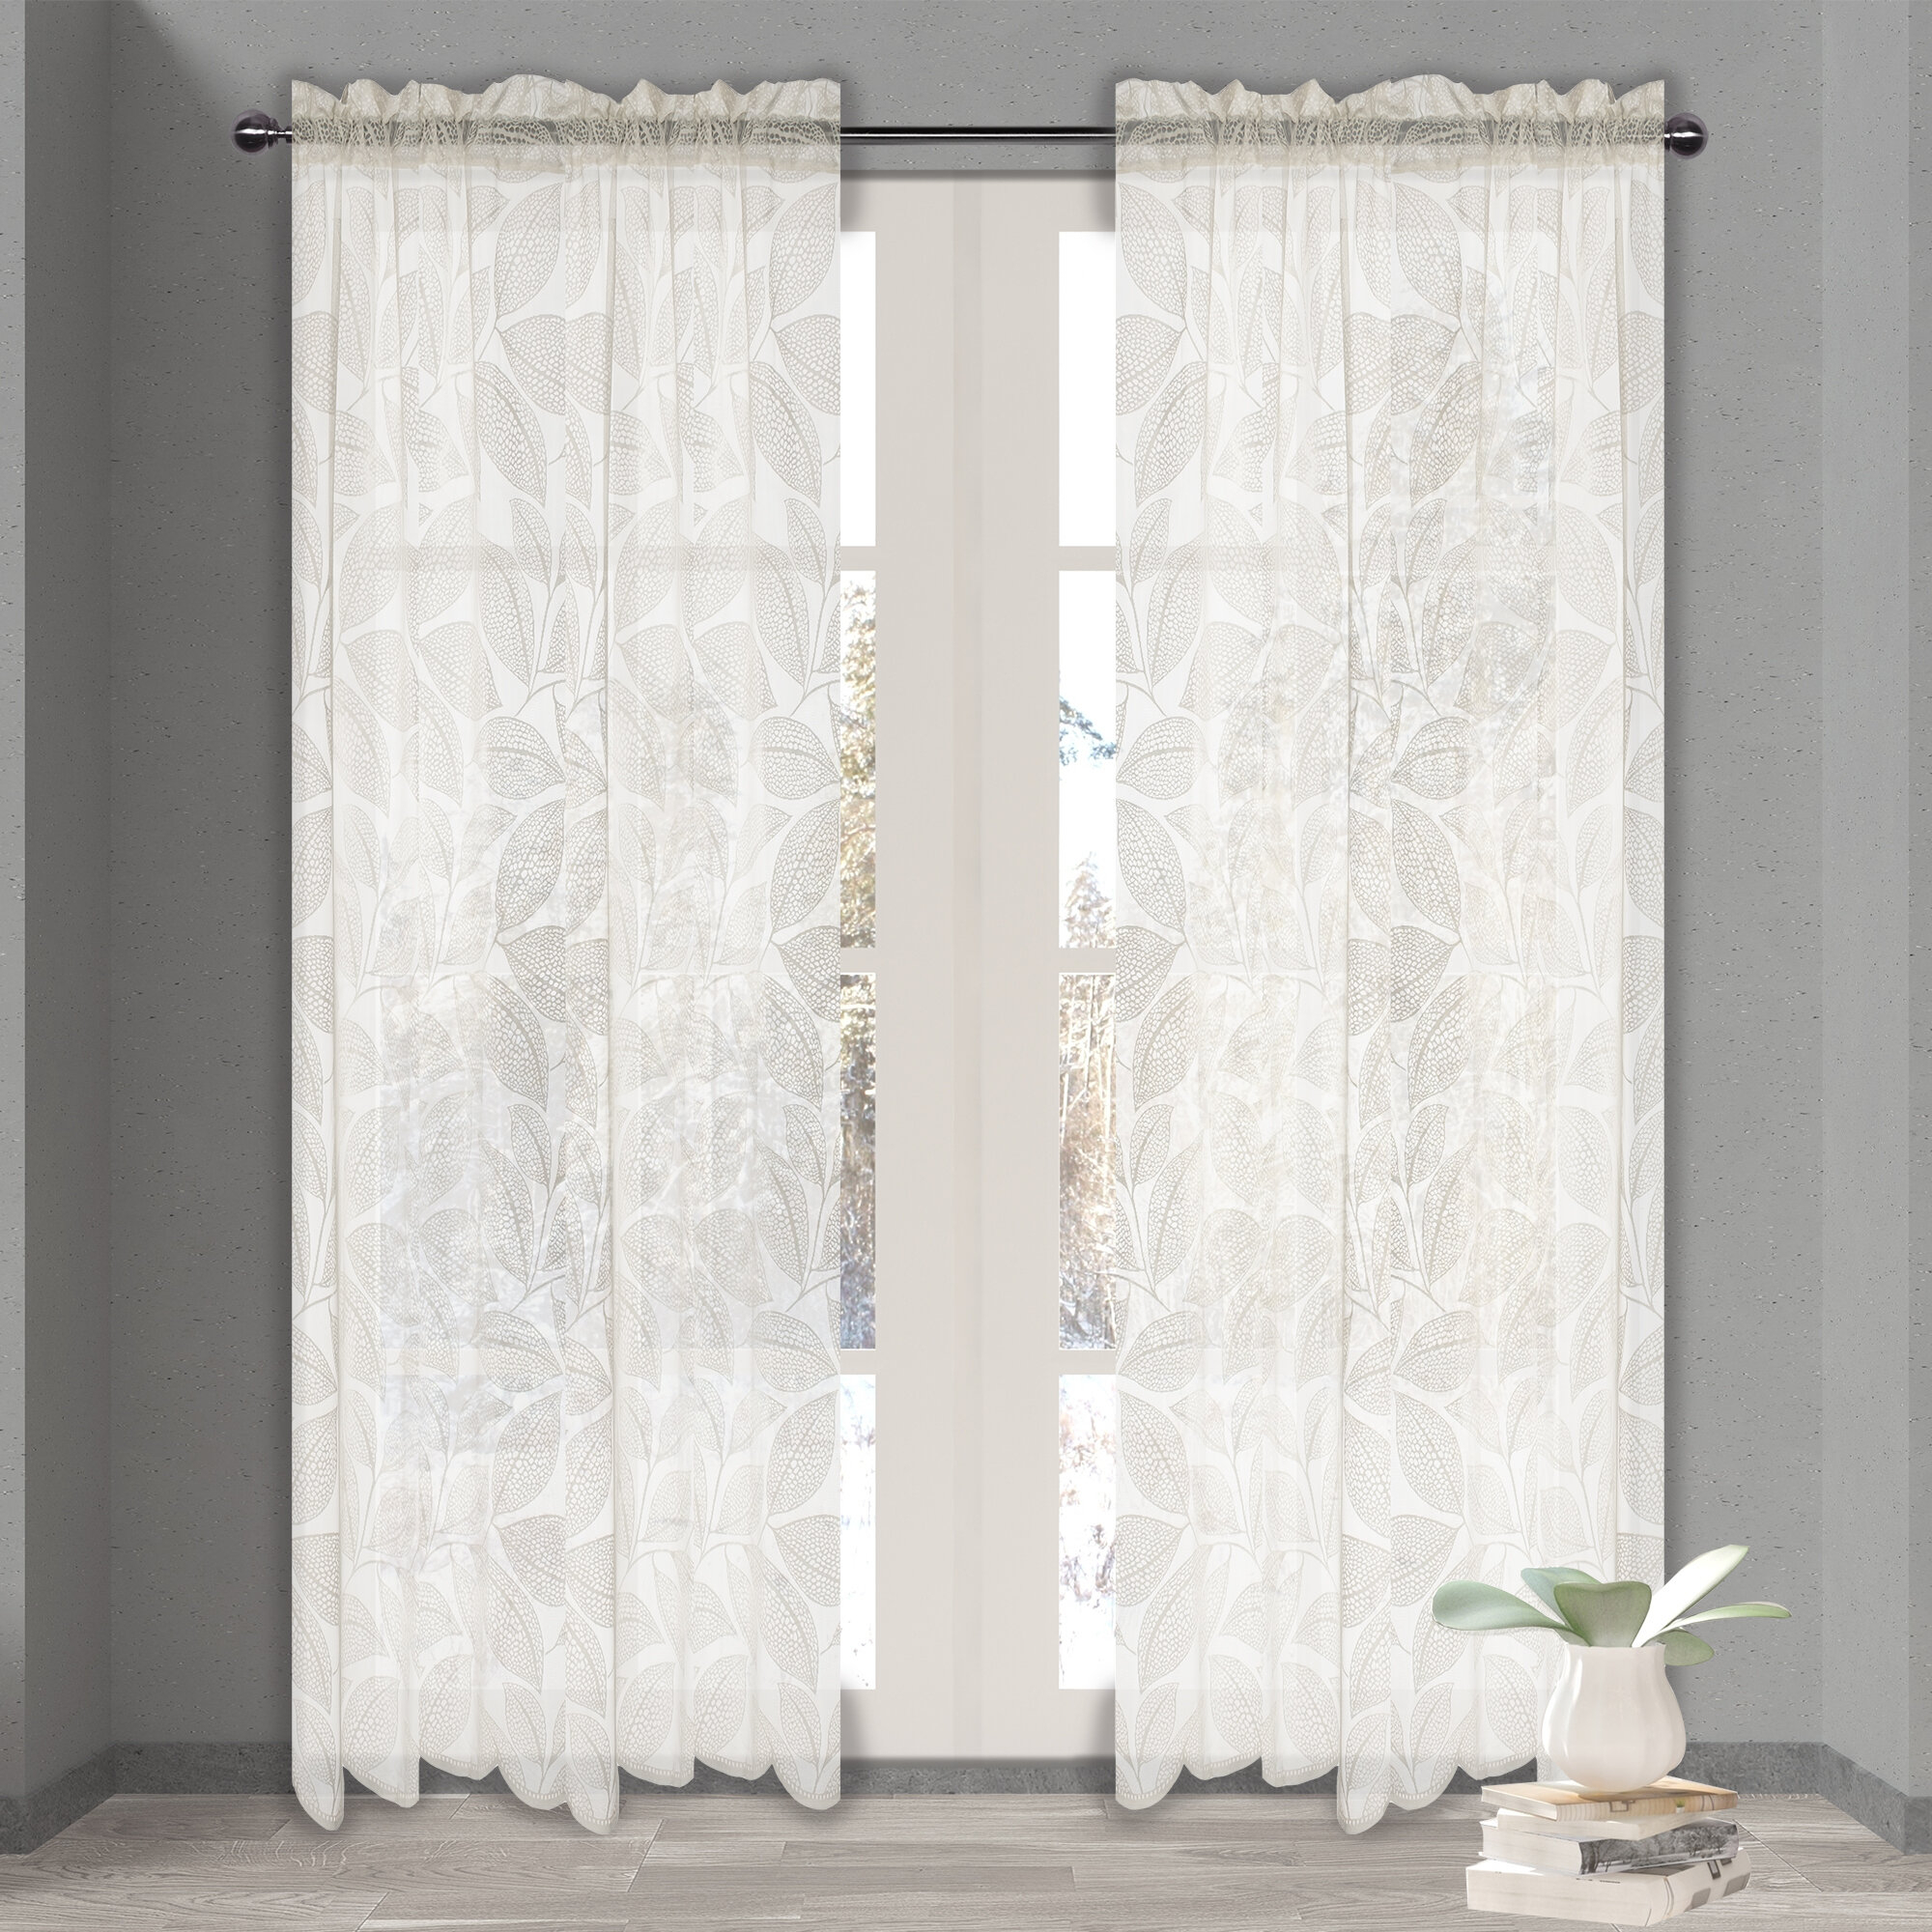 Mullenix Leaf Floral Sheer Rod Pocket Single Curtain Panel Inside Marine Life Motif Knitted Lace Window Curtain Pieces (View 18 of 20)